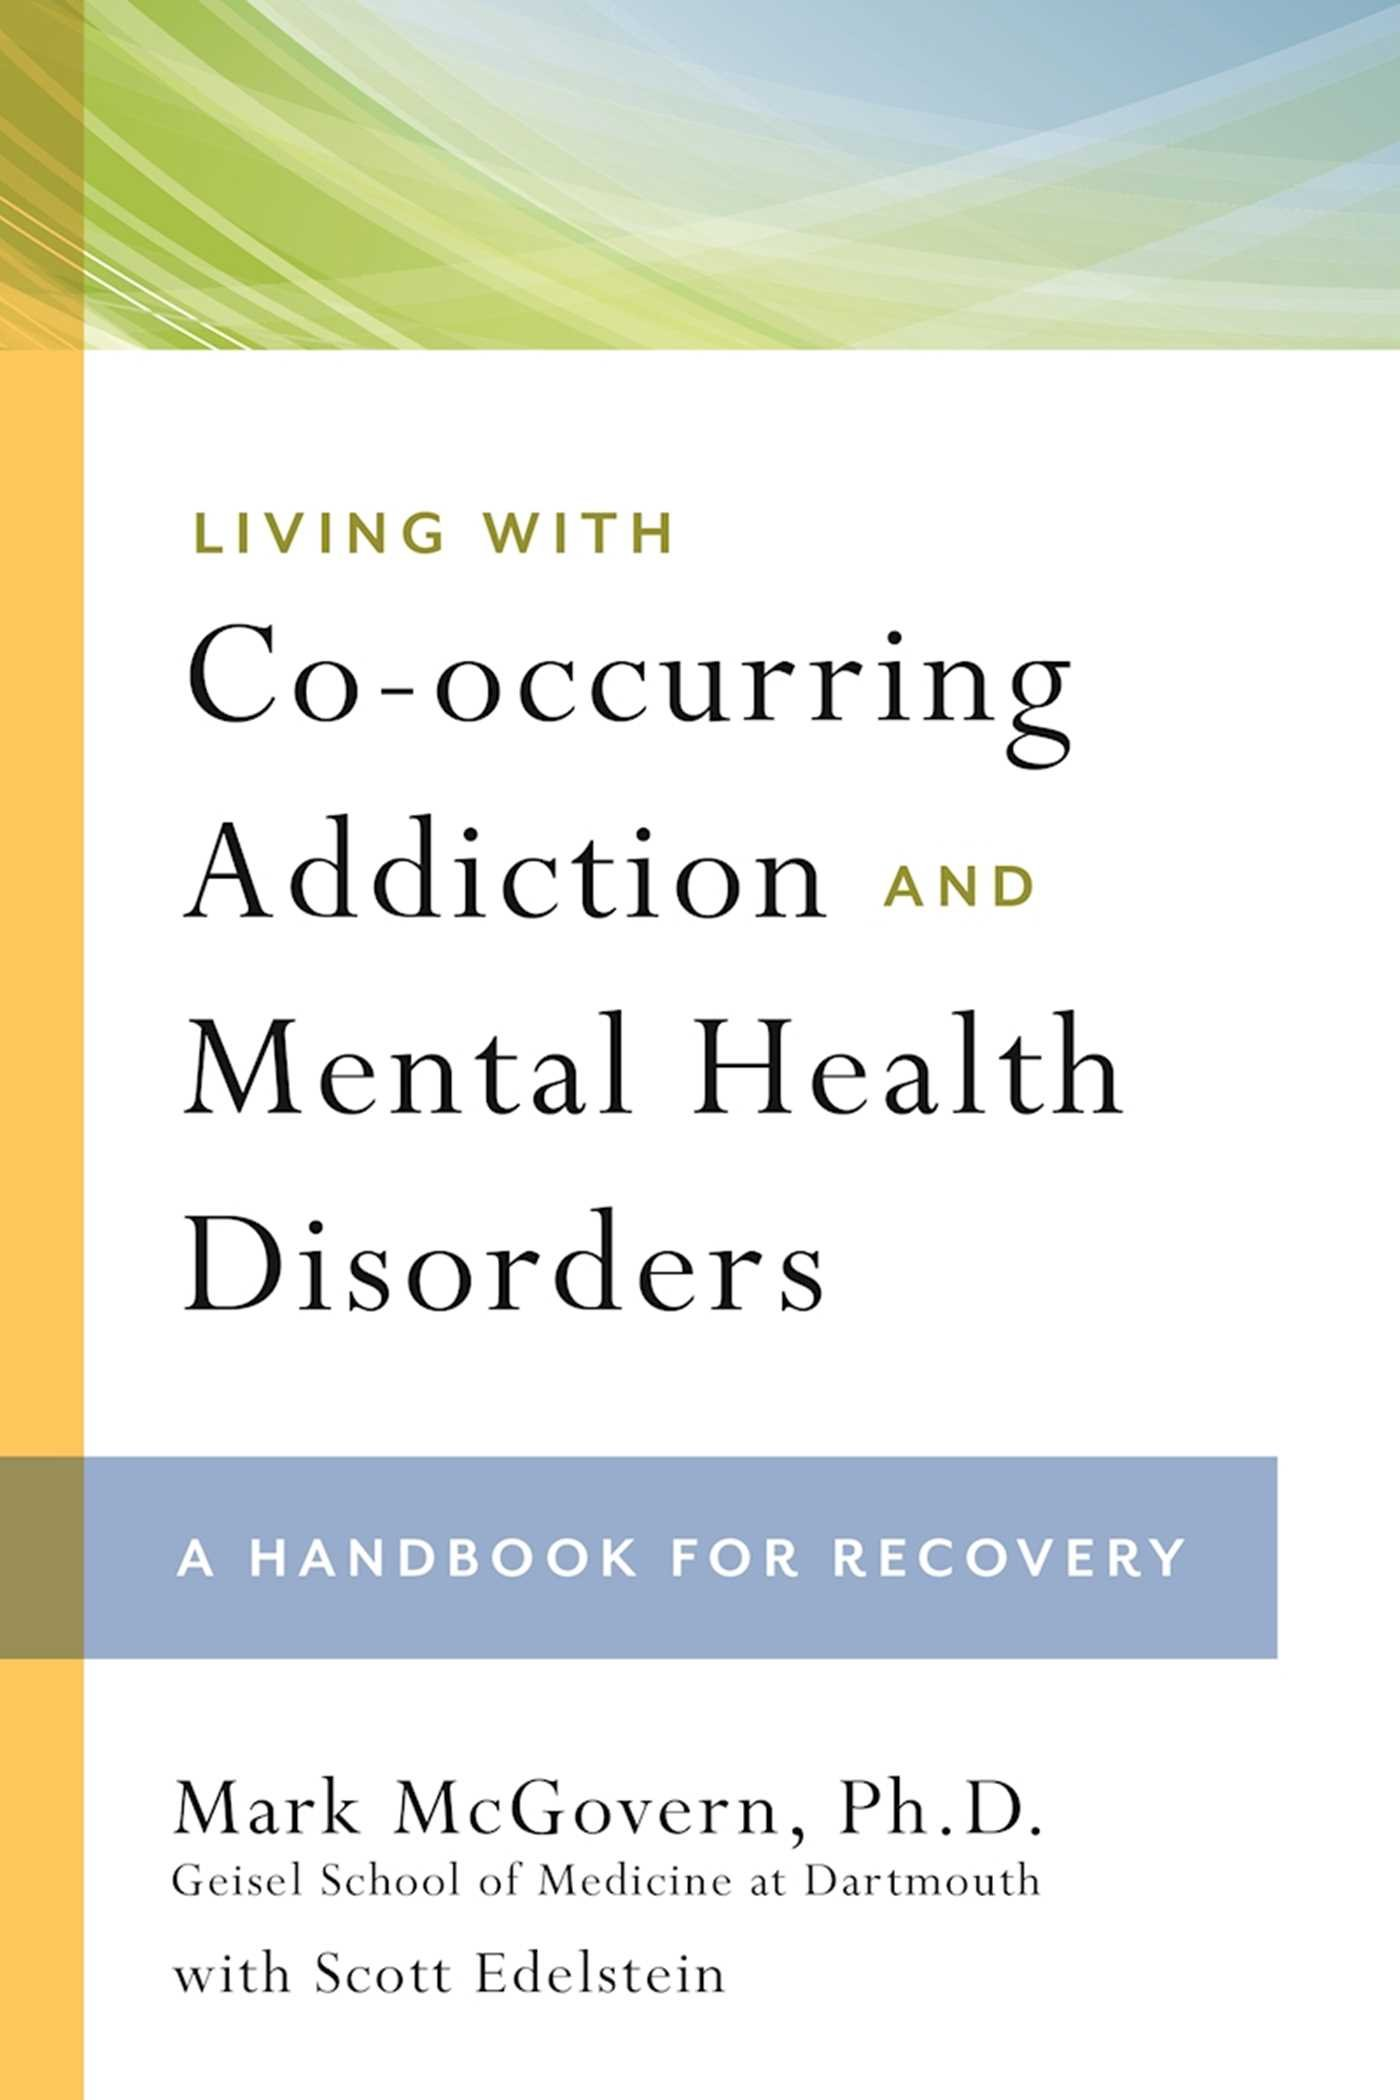 Download Living with Co-occurring Addiction and Mental Health Disorders: A Handbook for Recovery PDF